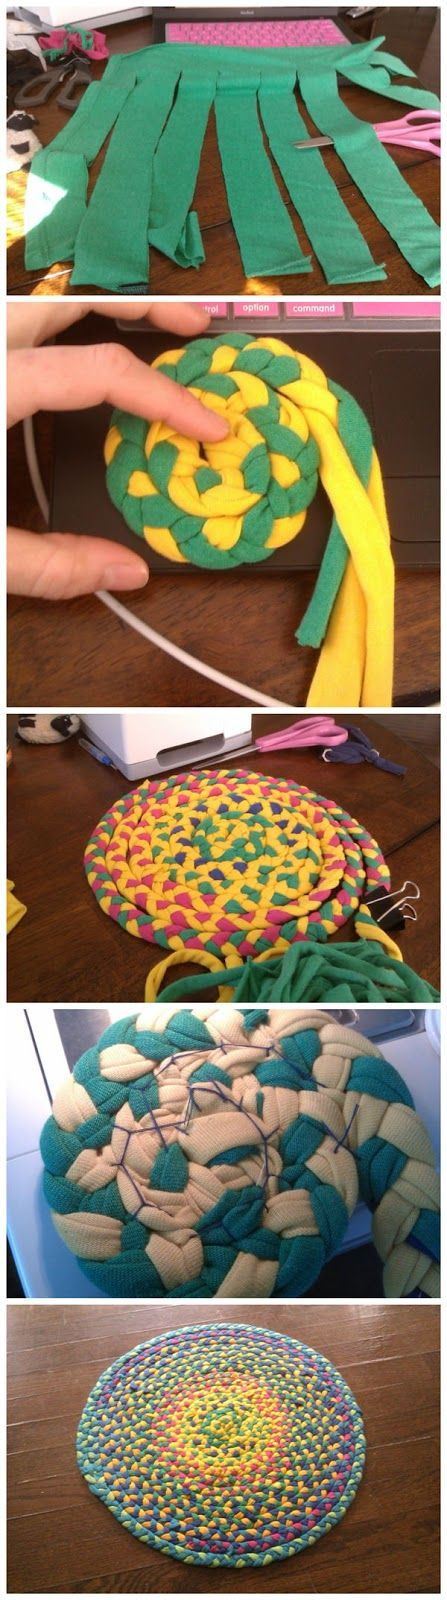 Make a braided t-shirt rug or coaster, or placemat. Looks like a fun project I'll probable never get to.